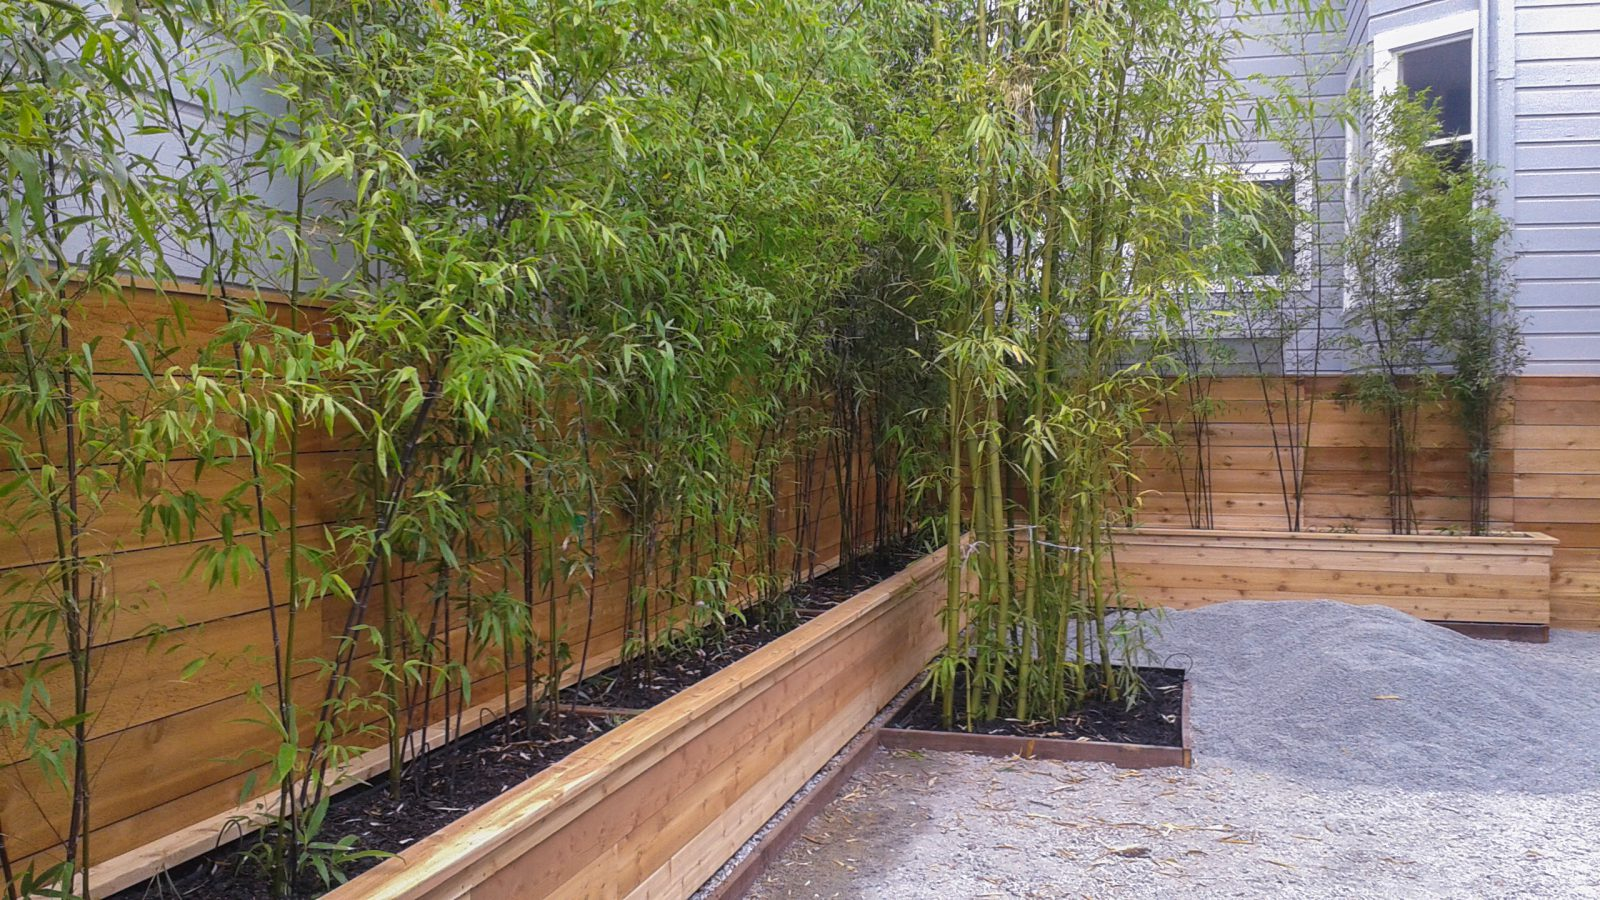 Containers Planter Boxes For Bamboo Bamboo Sourcery Nursery